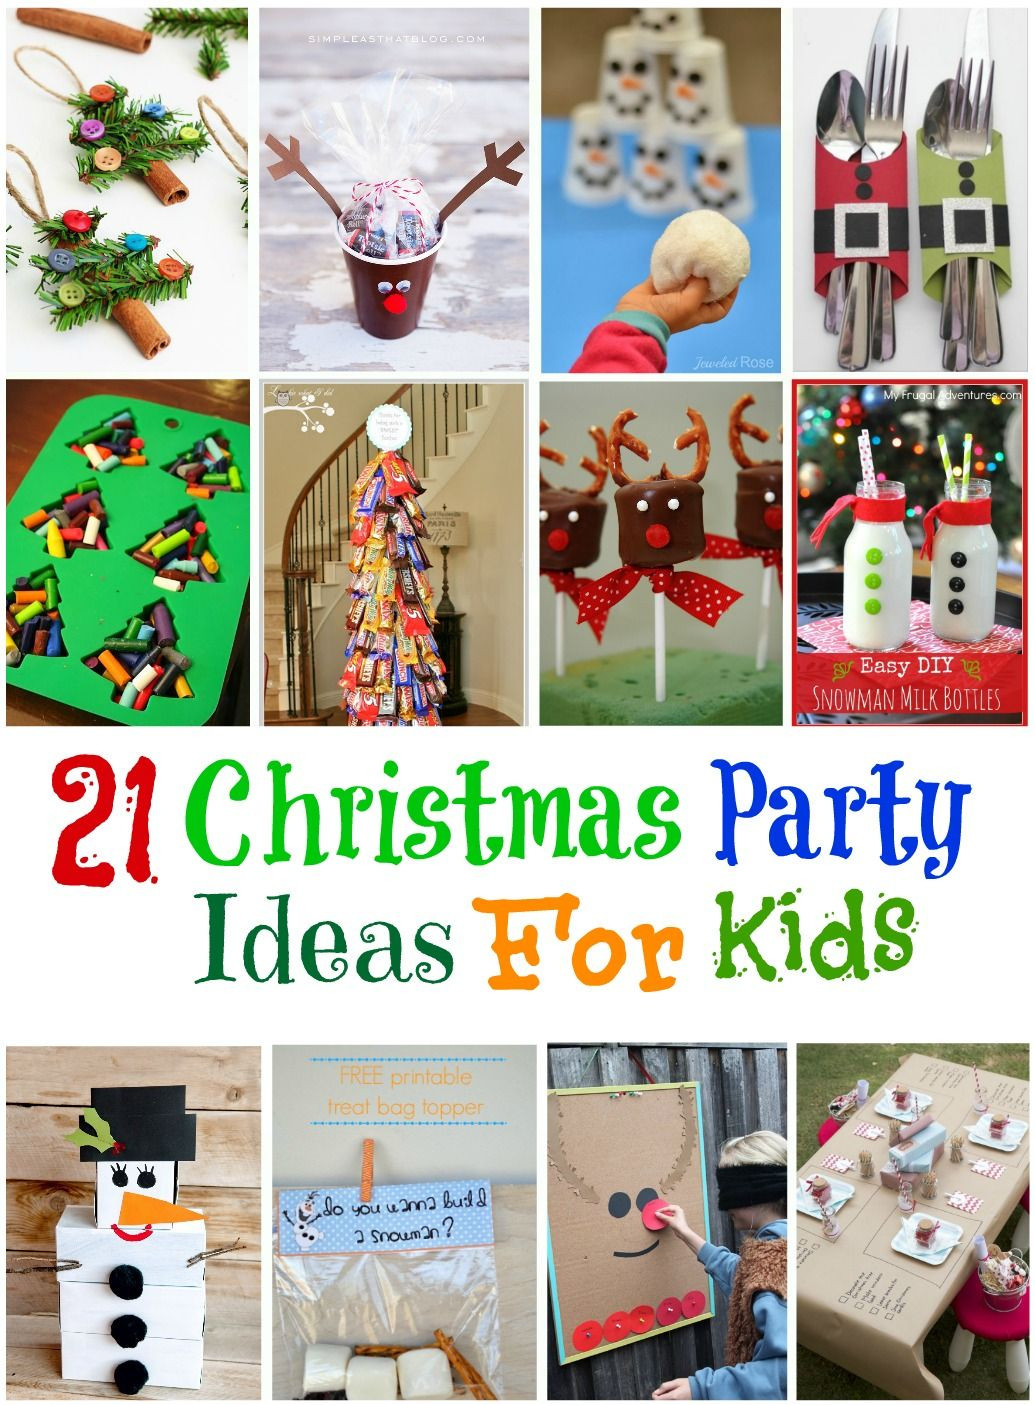 School Christmas Party Ideas  21 Amazing Christmas Party Ideas for Kids